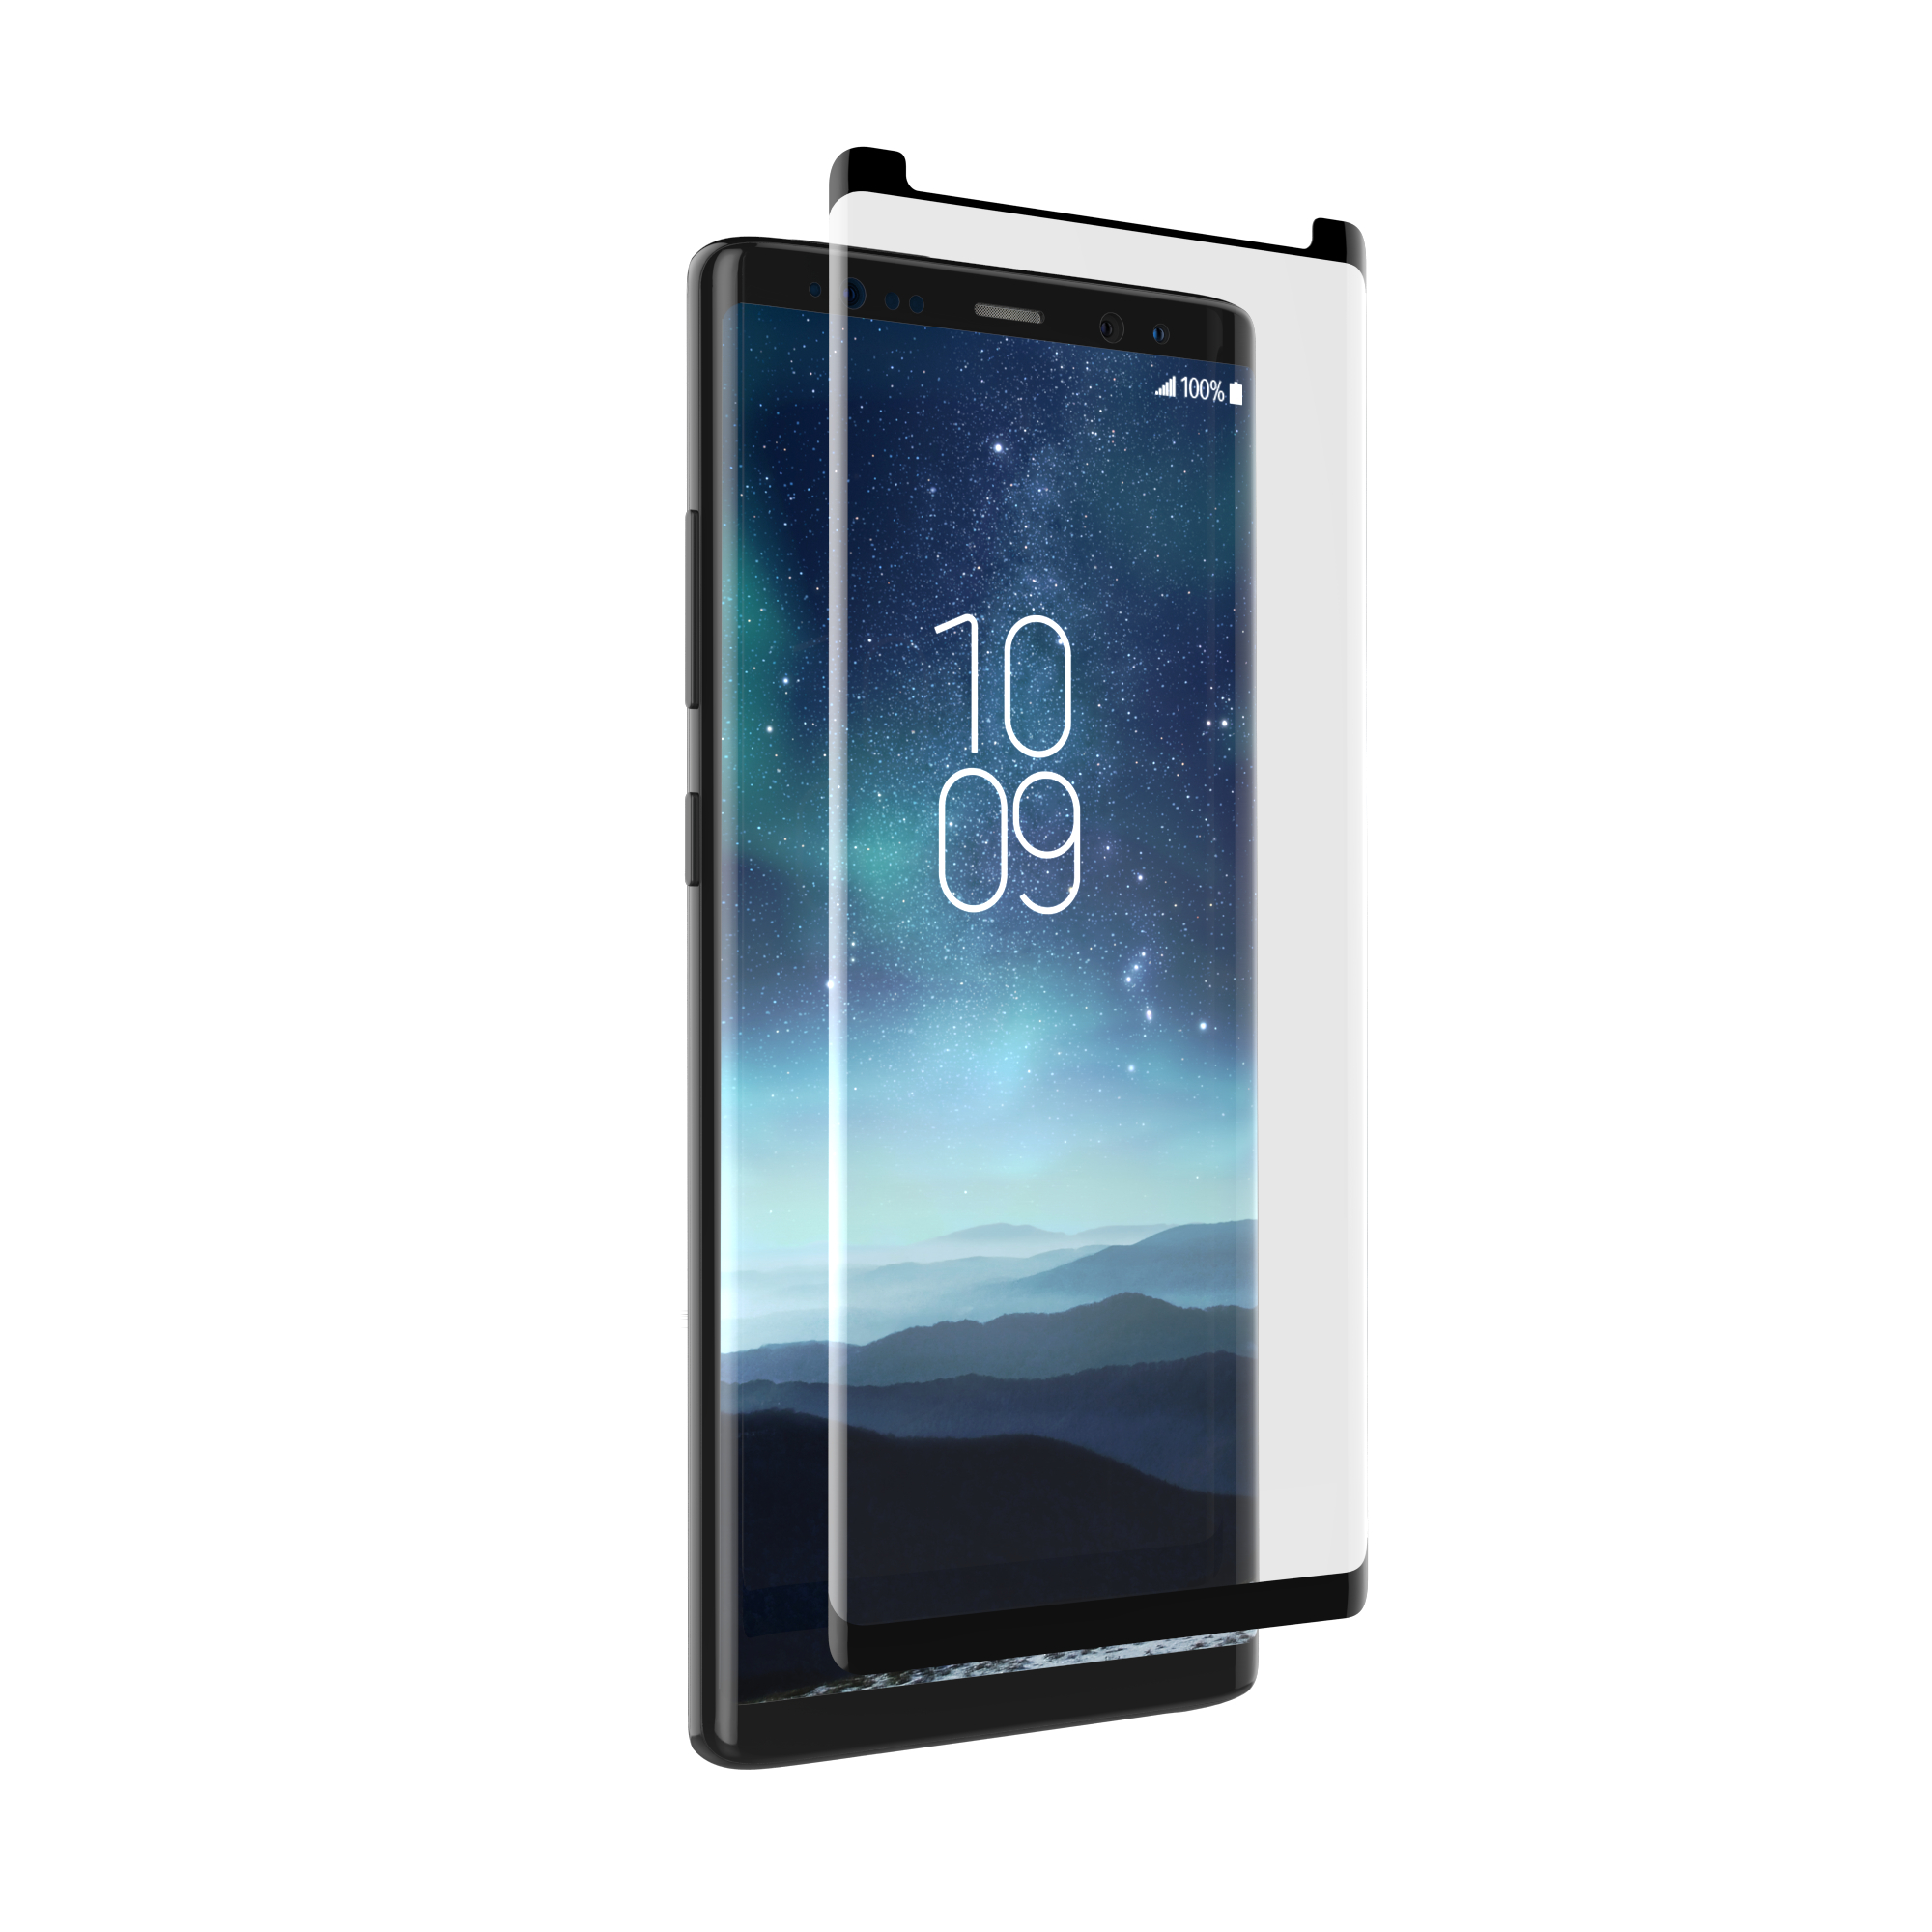 InvisibleShield Glass Curve for the Samsung Galaxy Note8